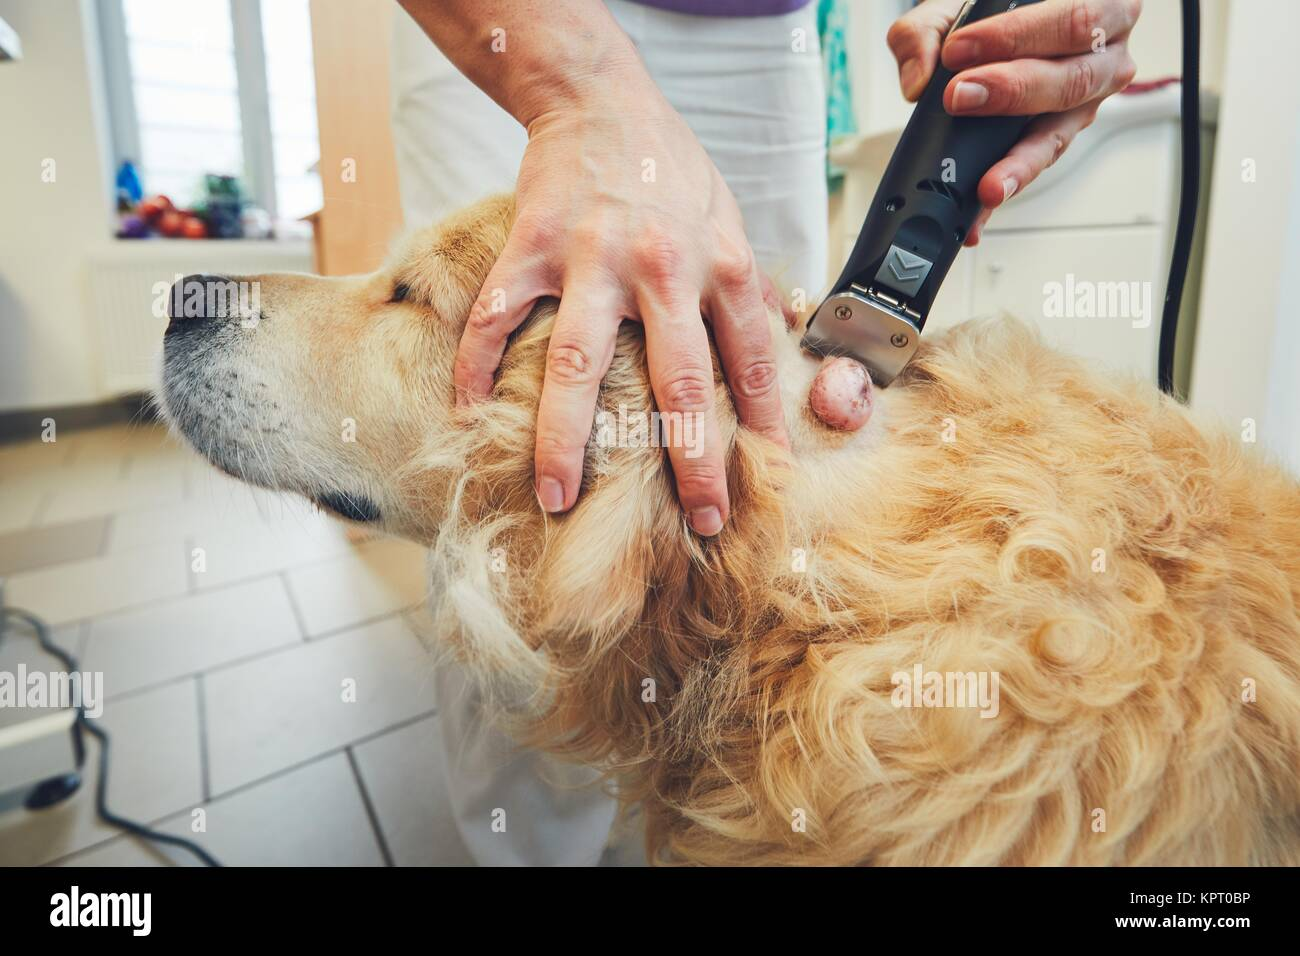 Golden retriever in the animal hospital. Veterinarian preparing the dog for surgery. - Stock Image